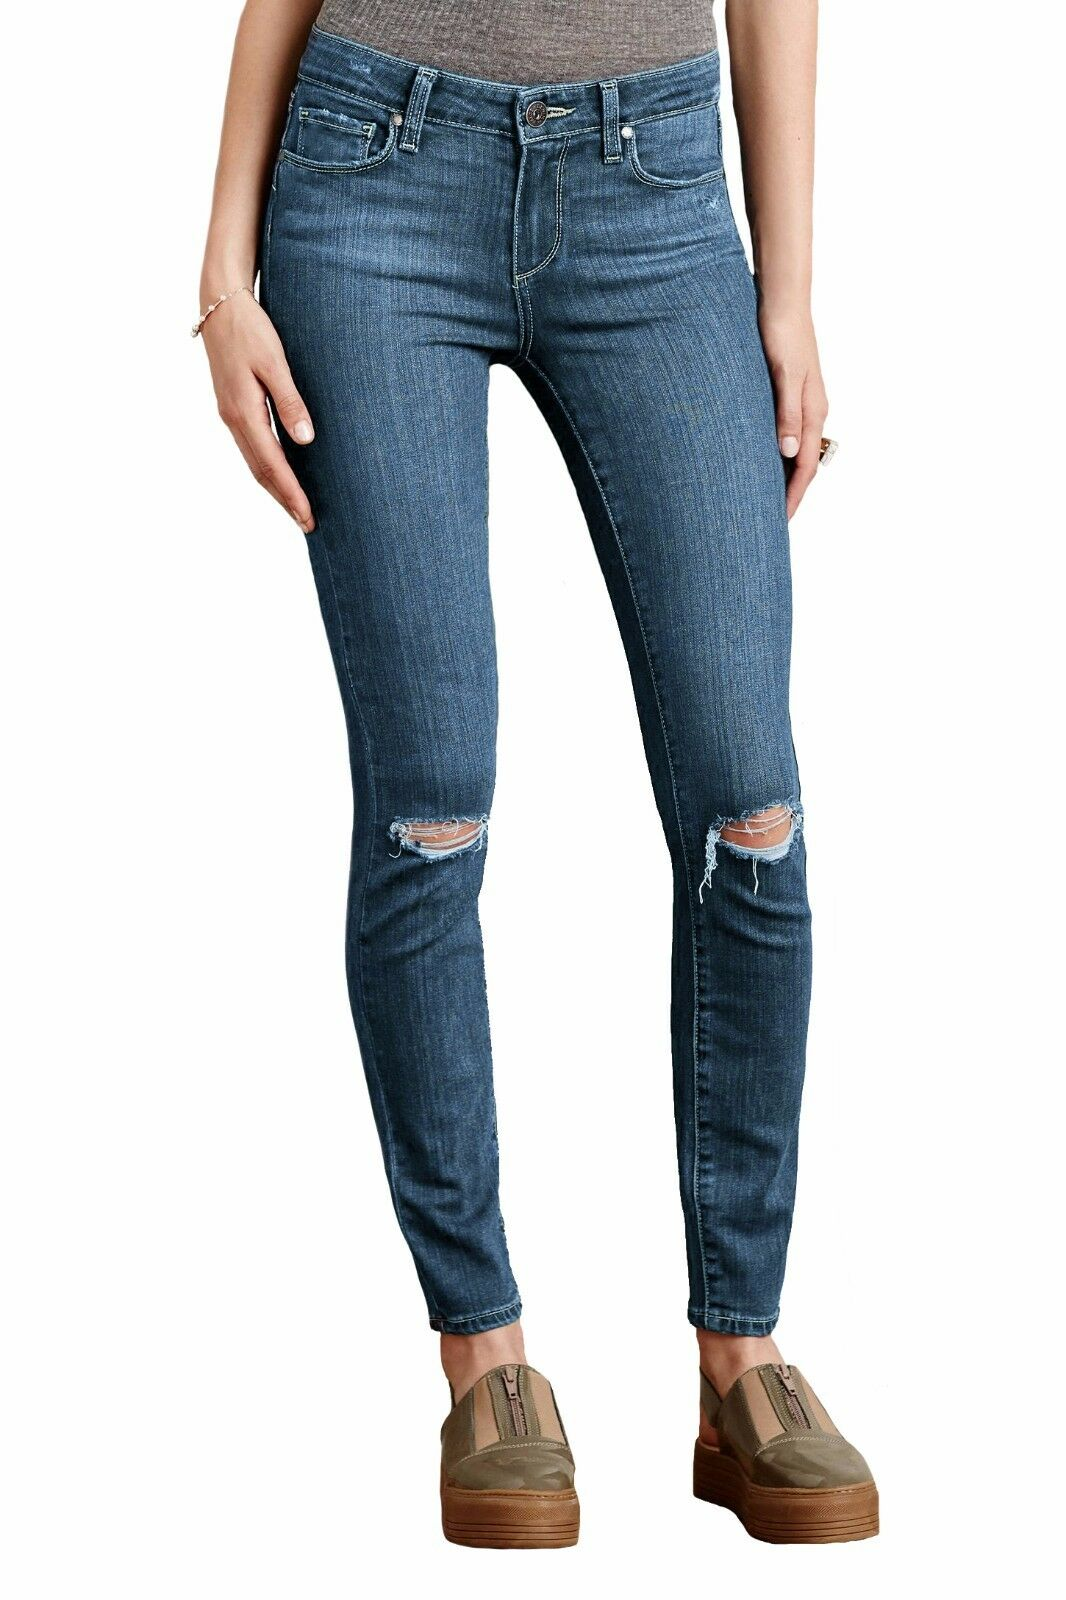 Paige Verdugo Ankle Jeans Orleans Distressed Women's US Sizes 25 & 27 & 28